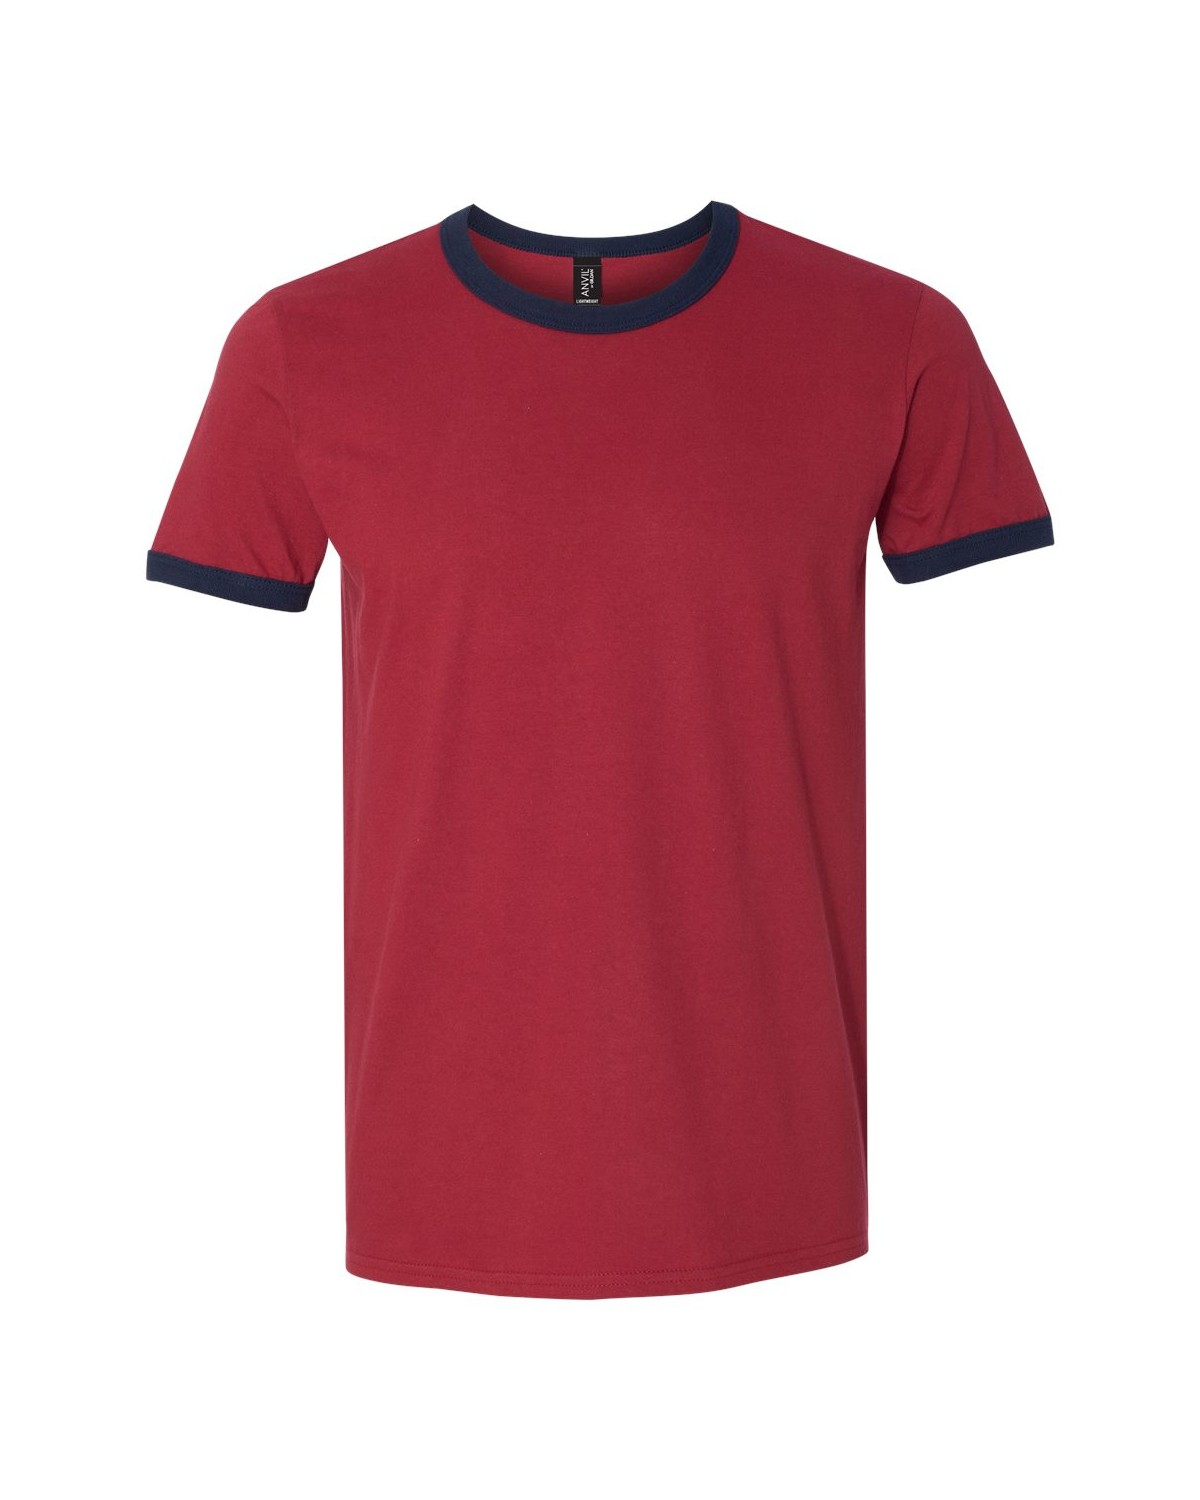 988 Anvil Independence Red/ Navy